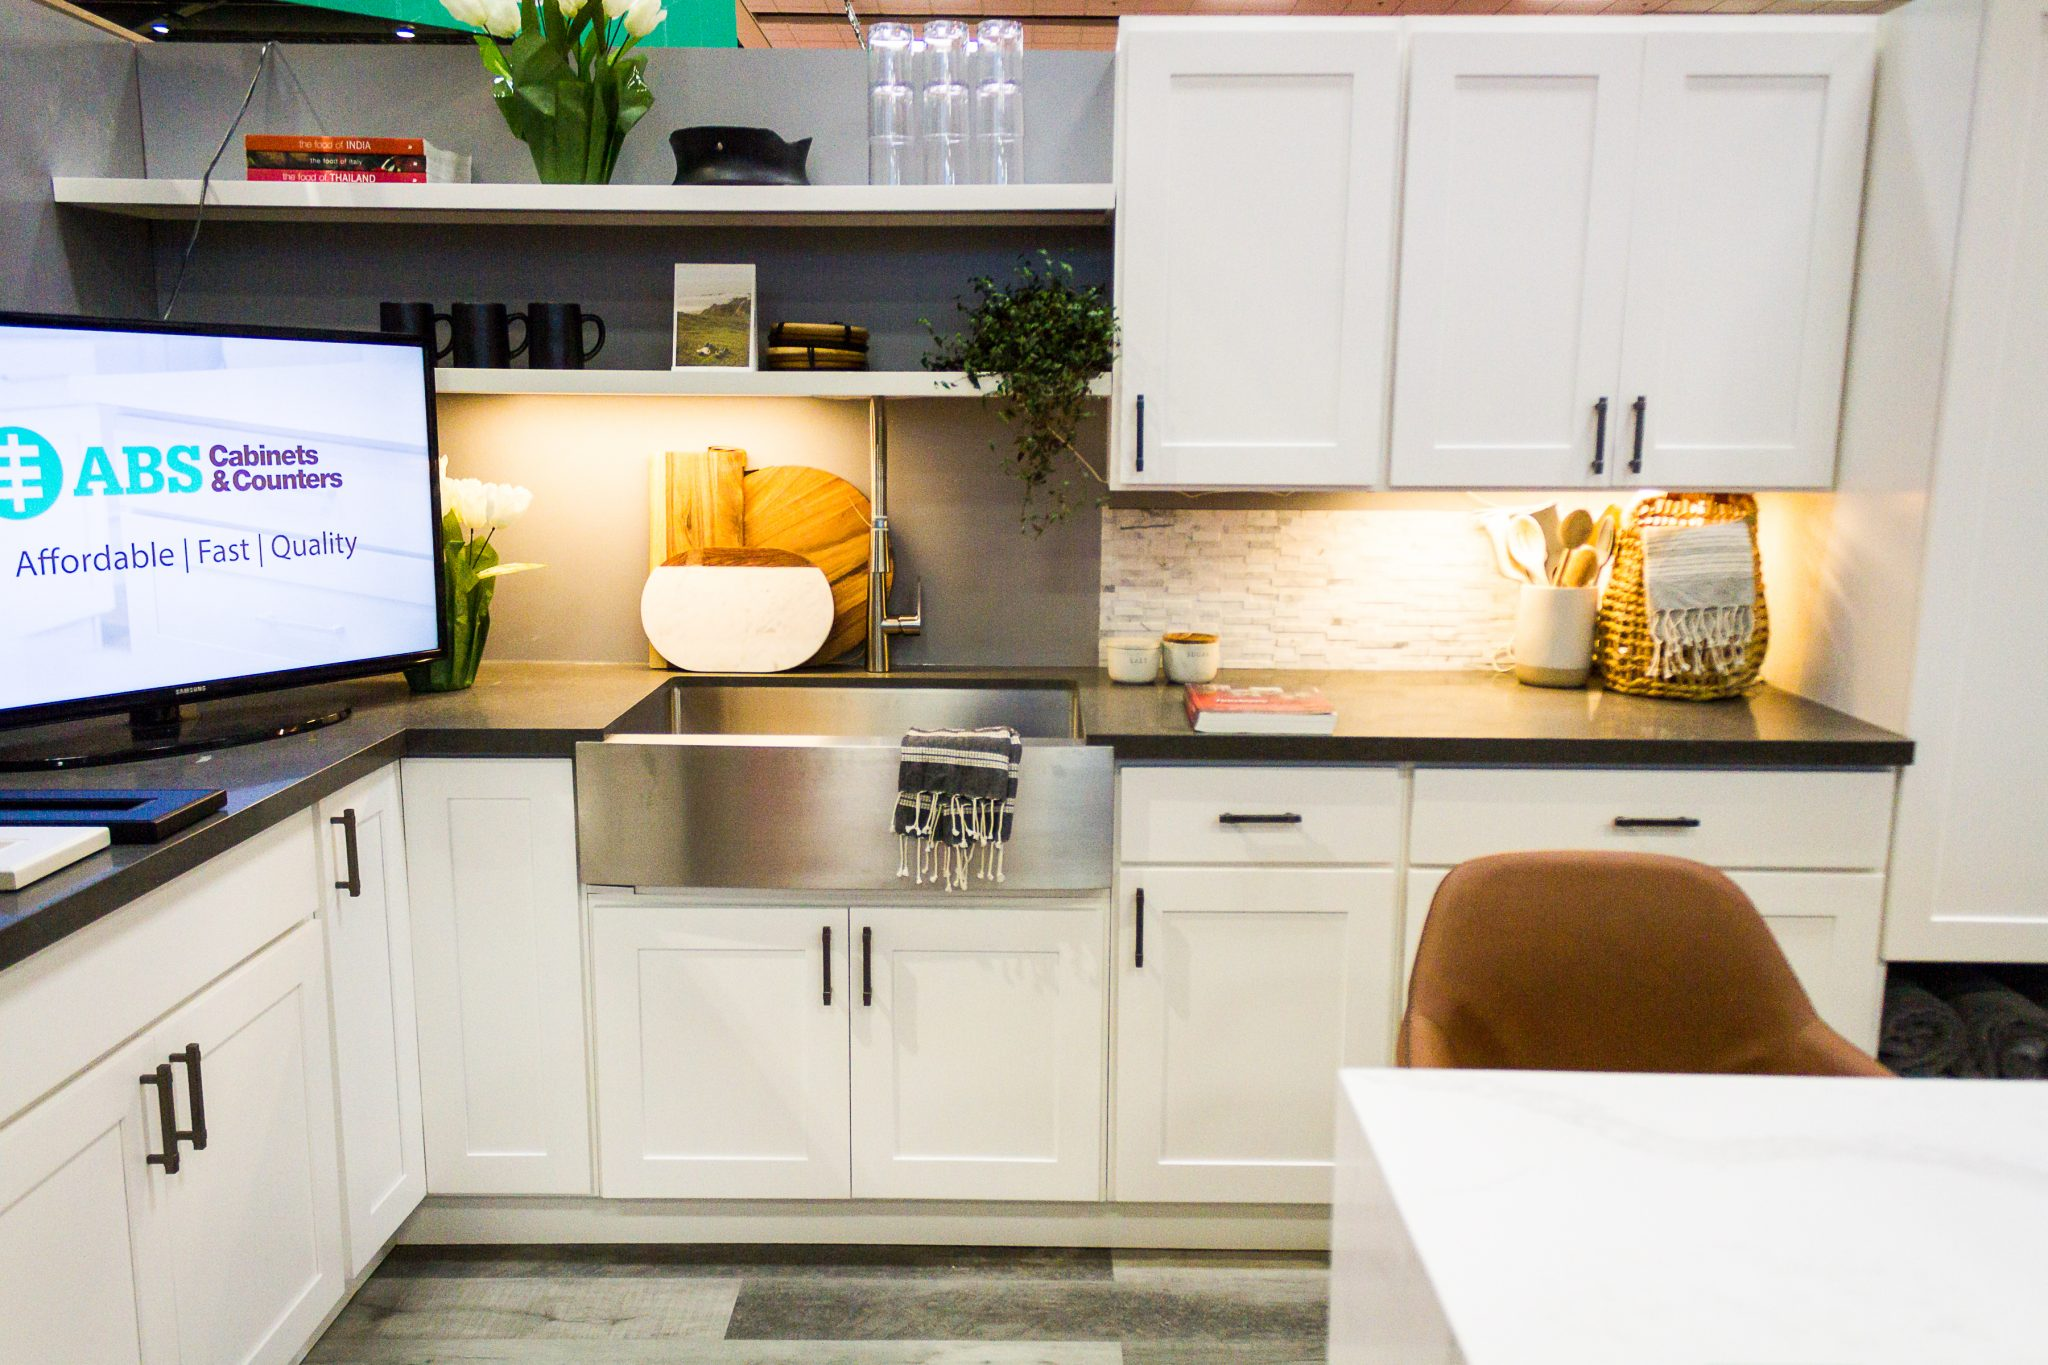 Staging the kitchen